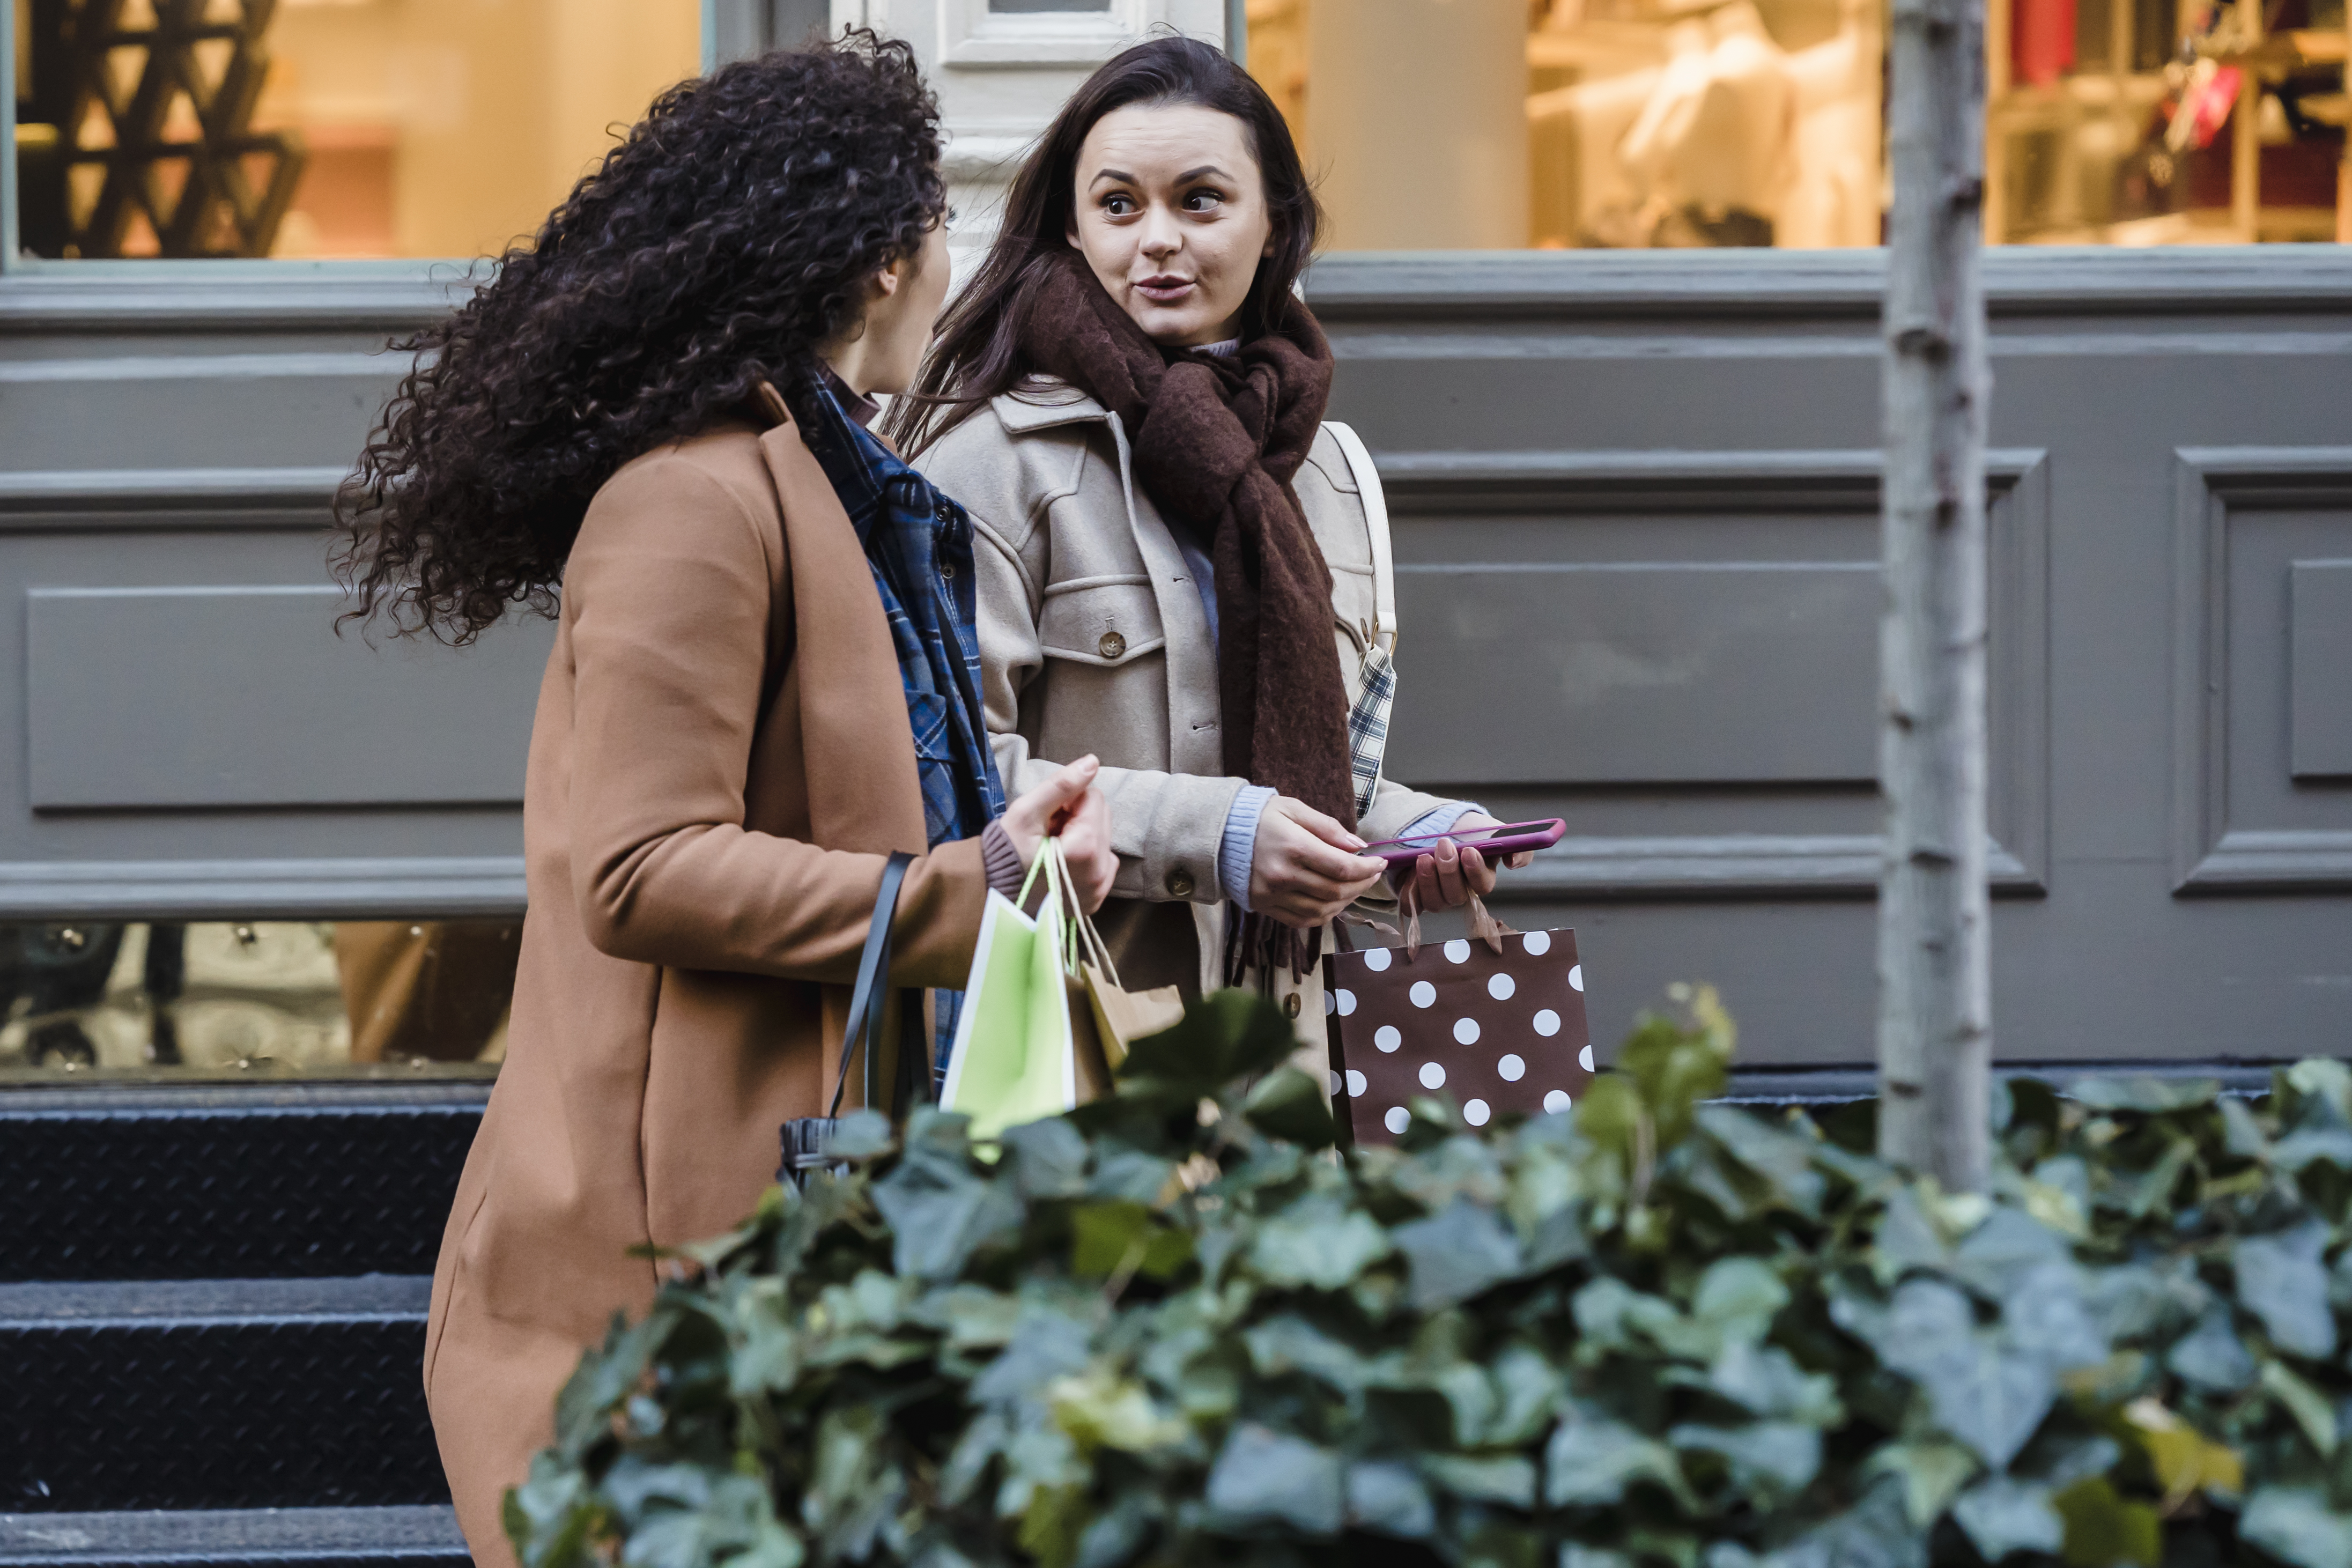 amazed young women with shopping bags chatting while strolling on sidewalk